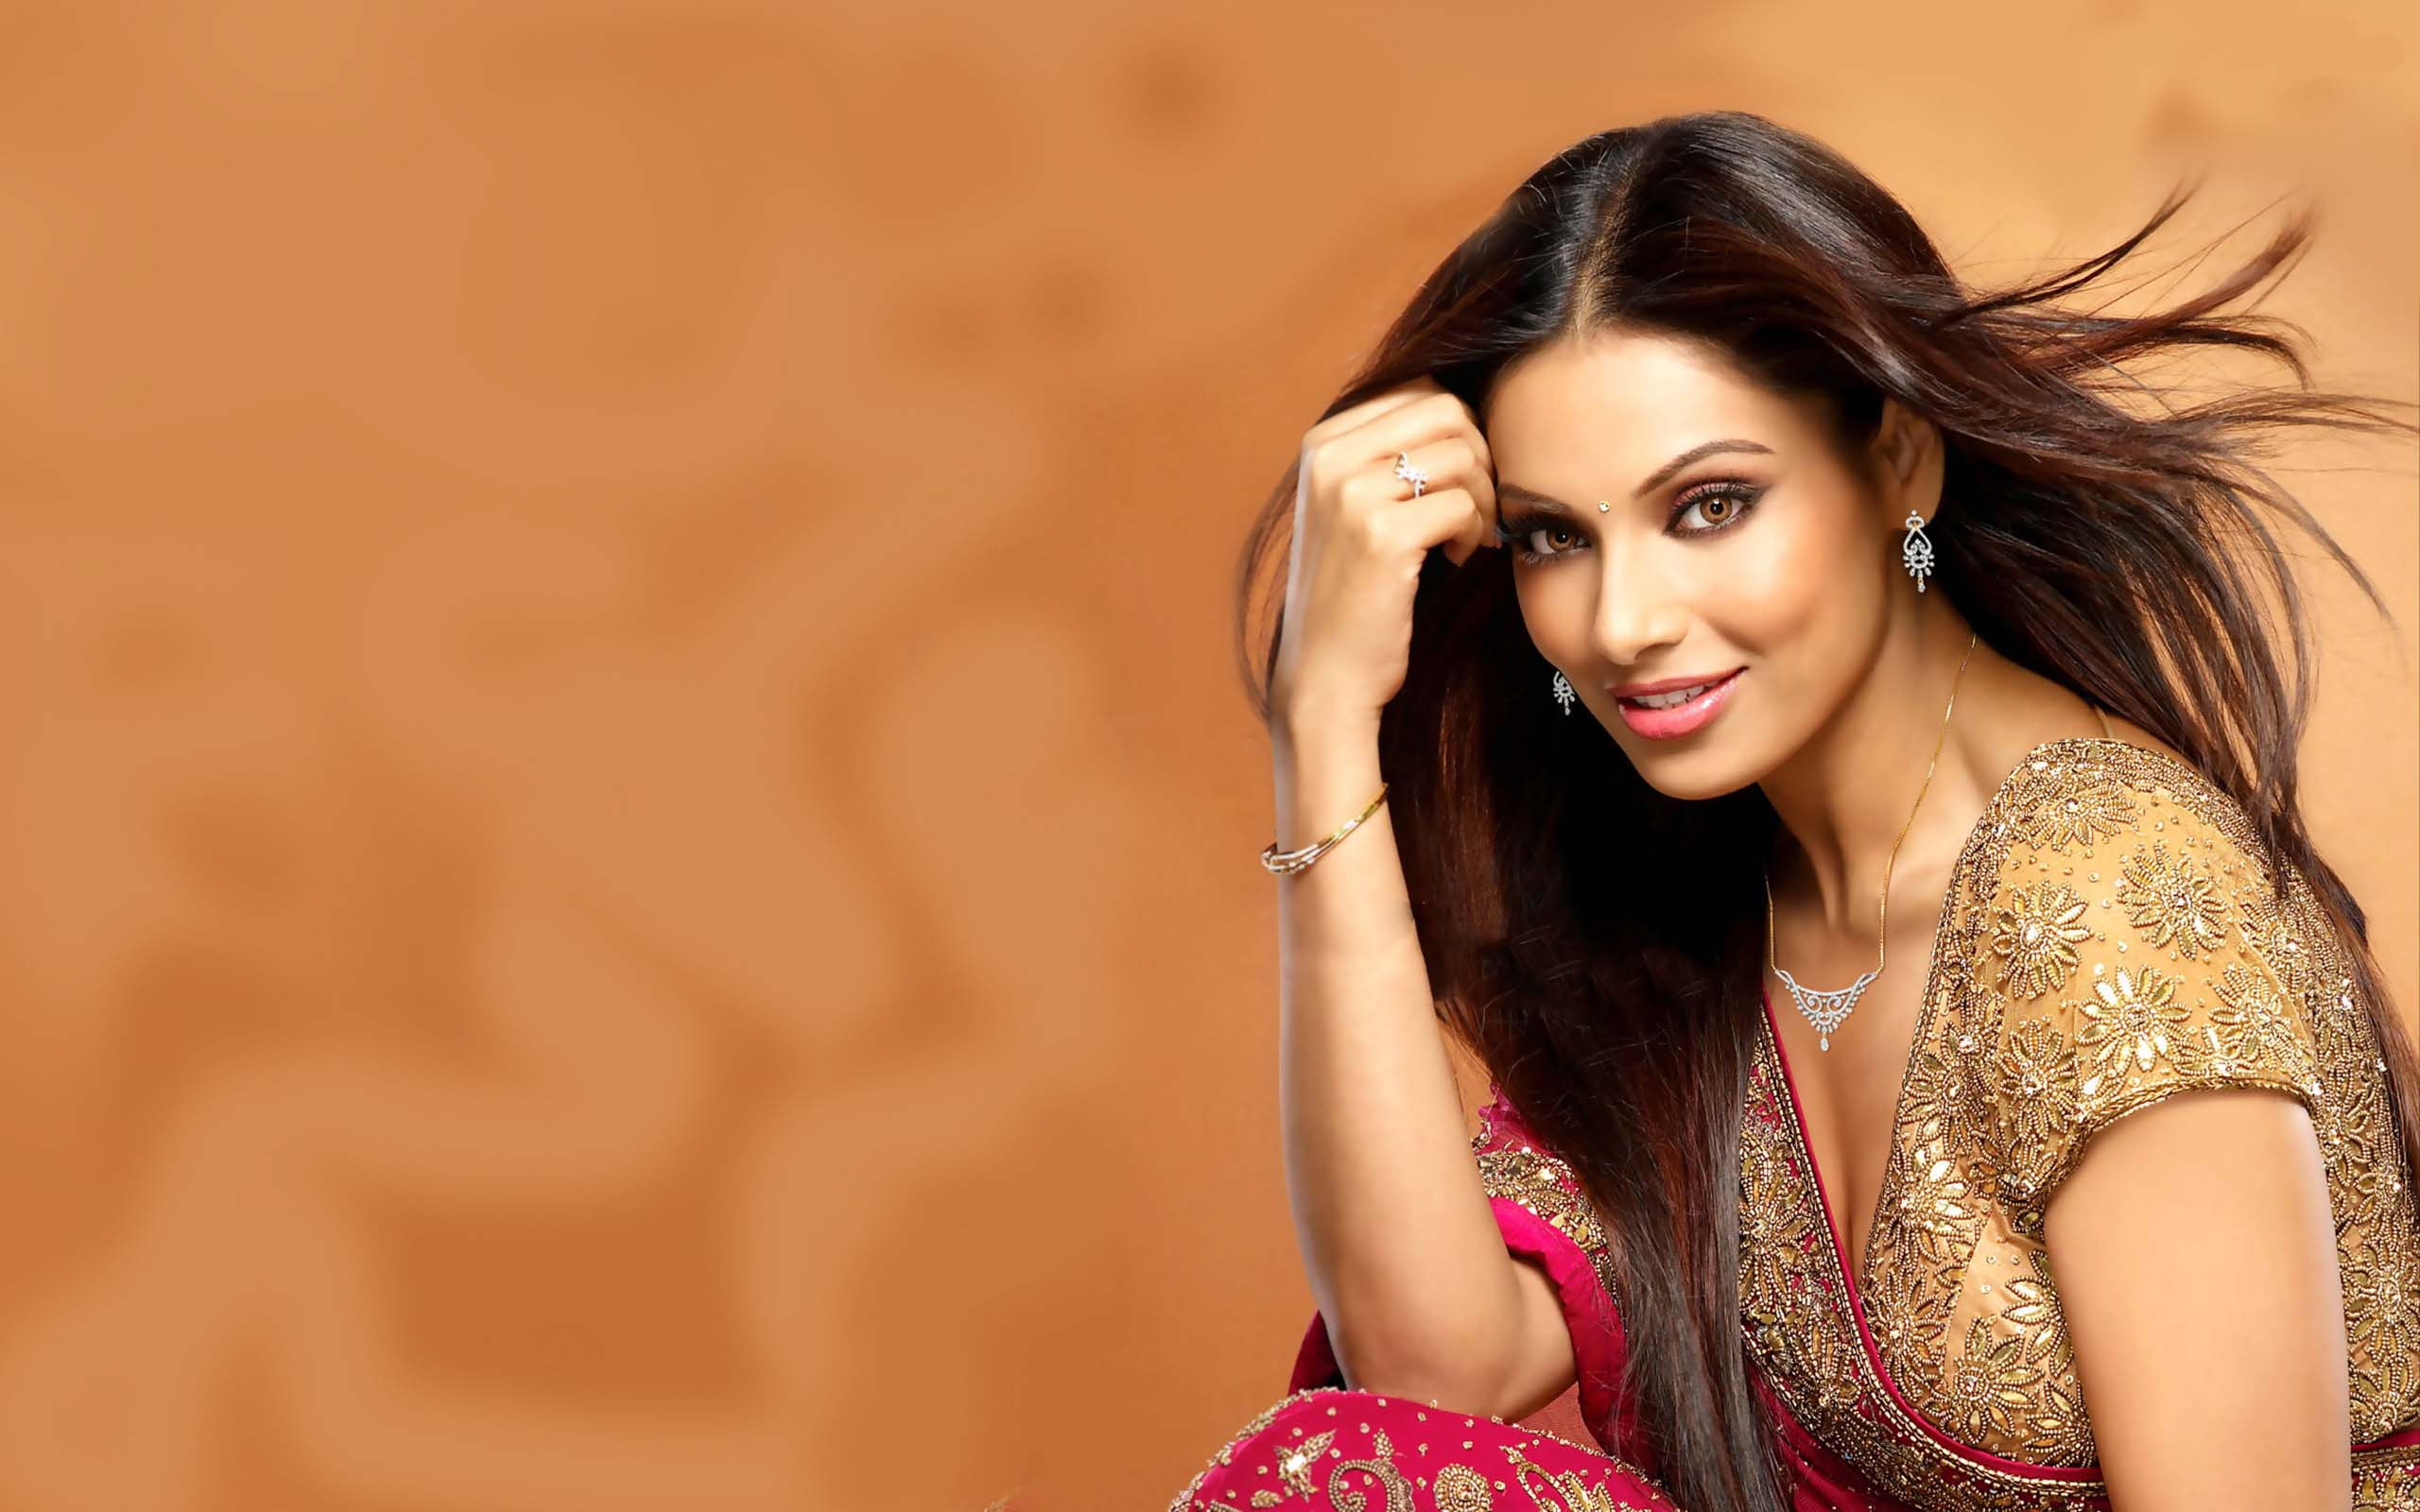 Cute Beautifull Bipasha Basu Hd Wallpapers